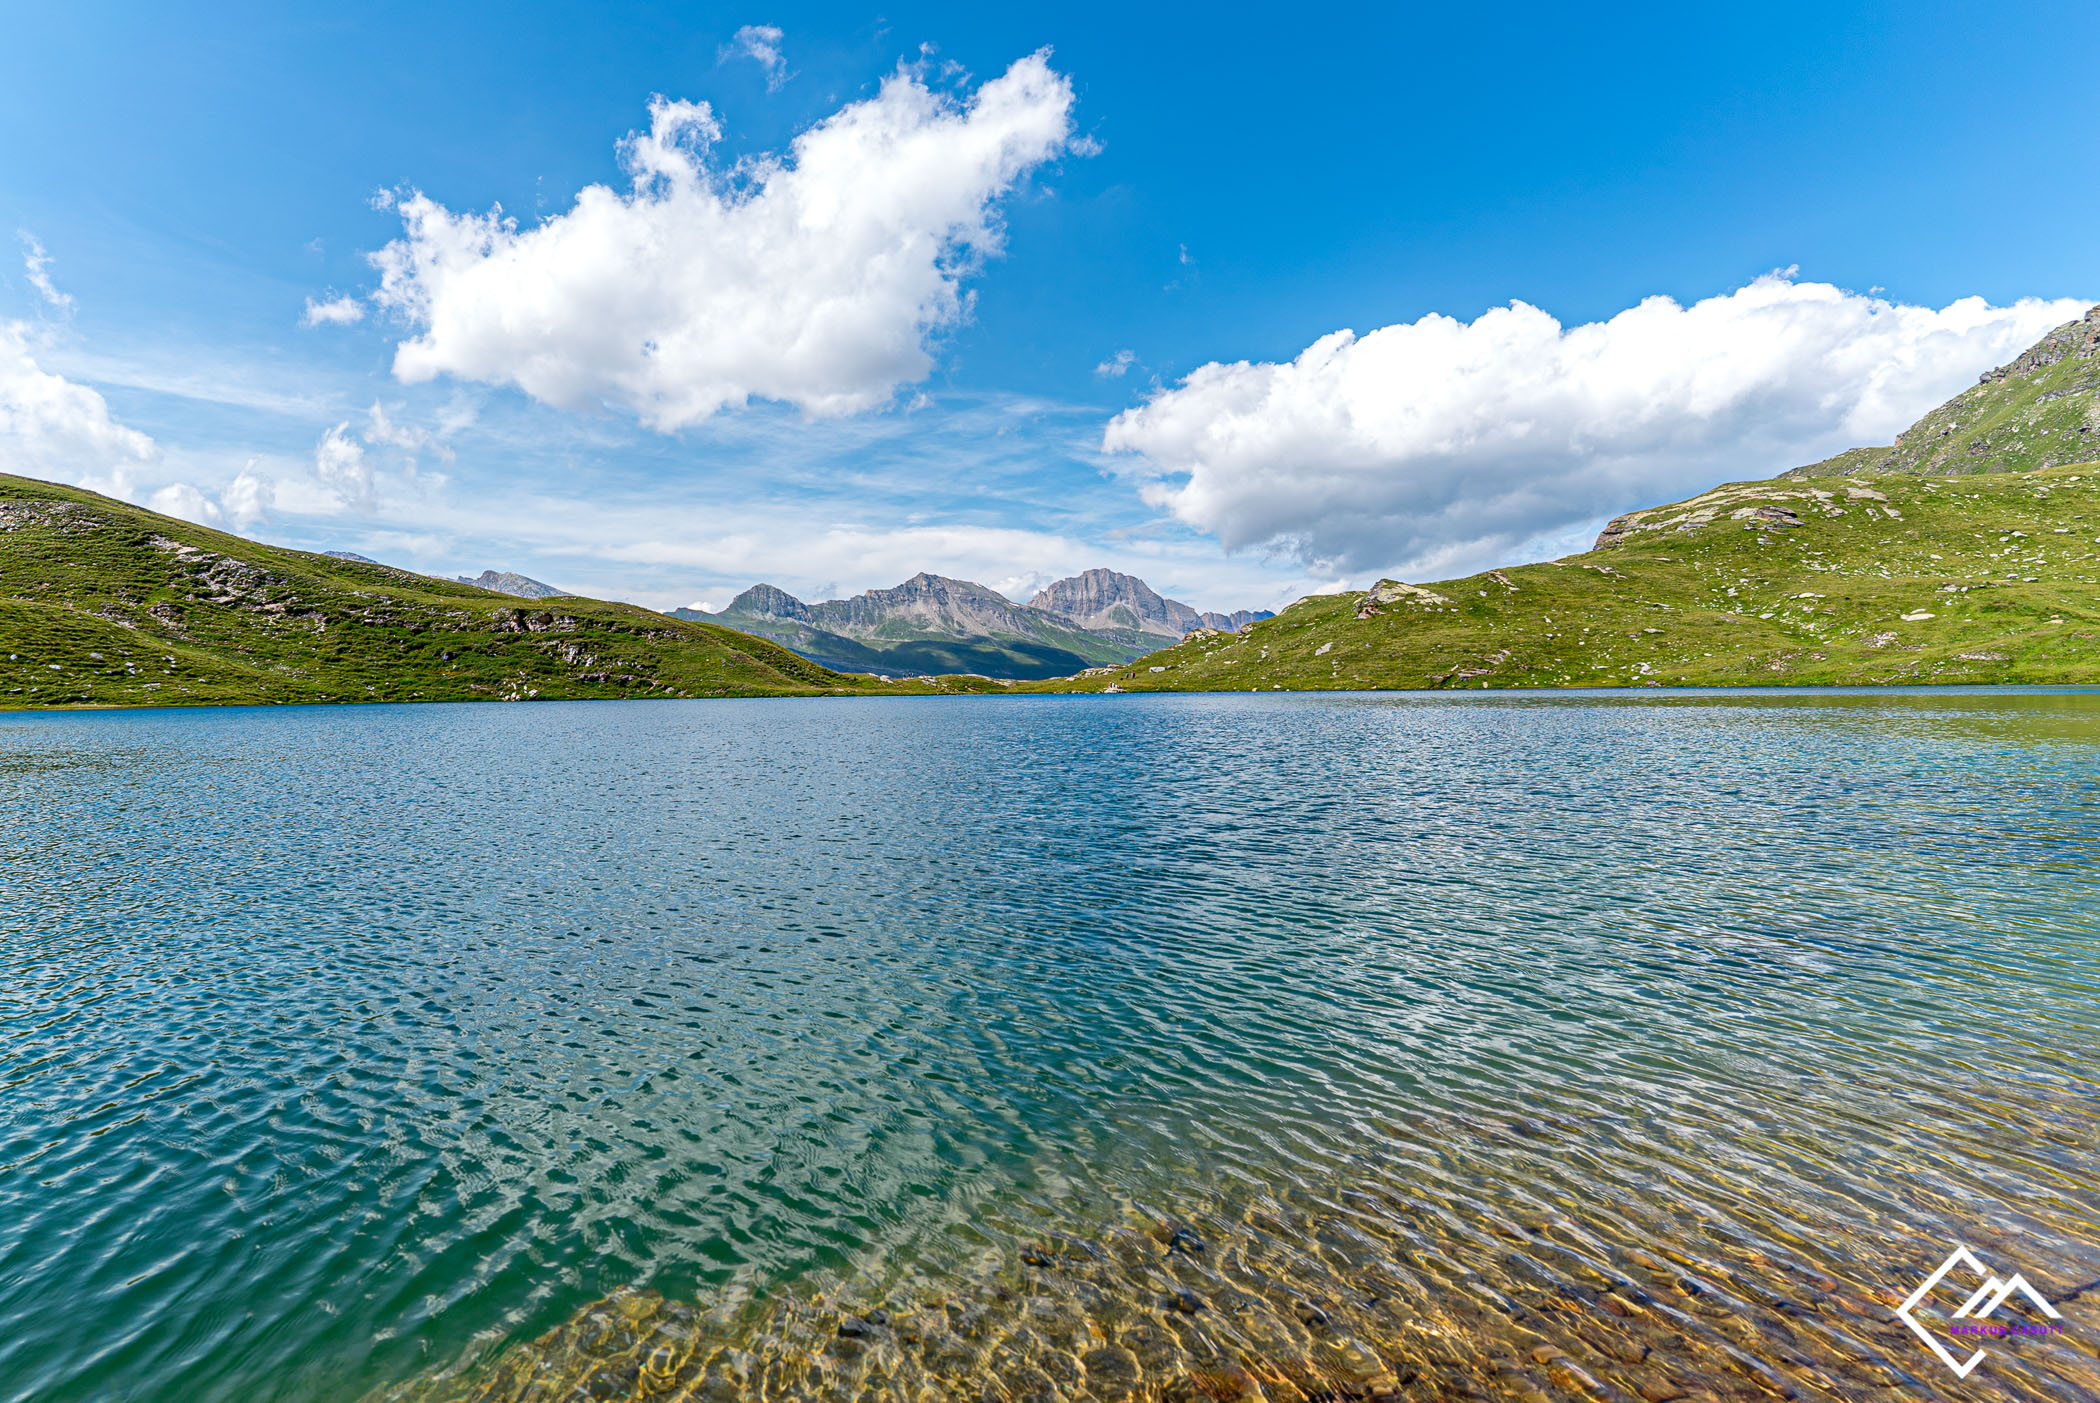 Guraletschsee_a7s_20160804_00004_037_web